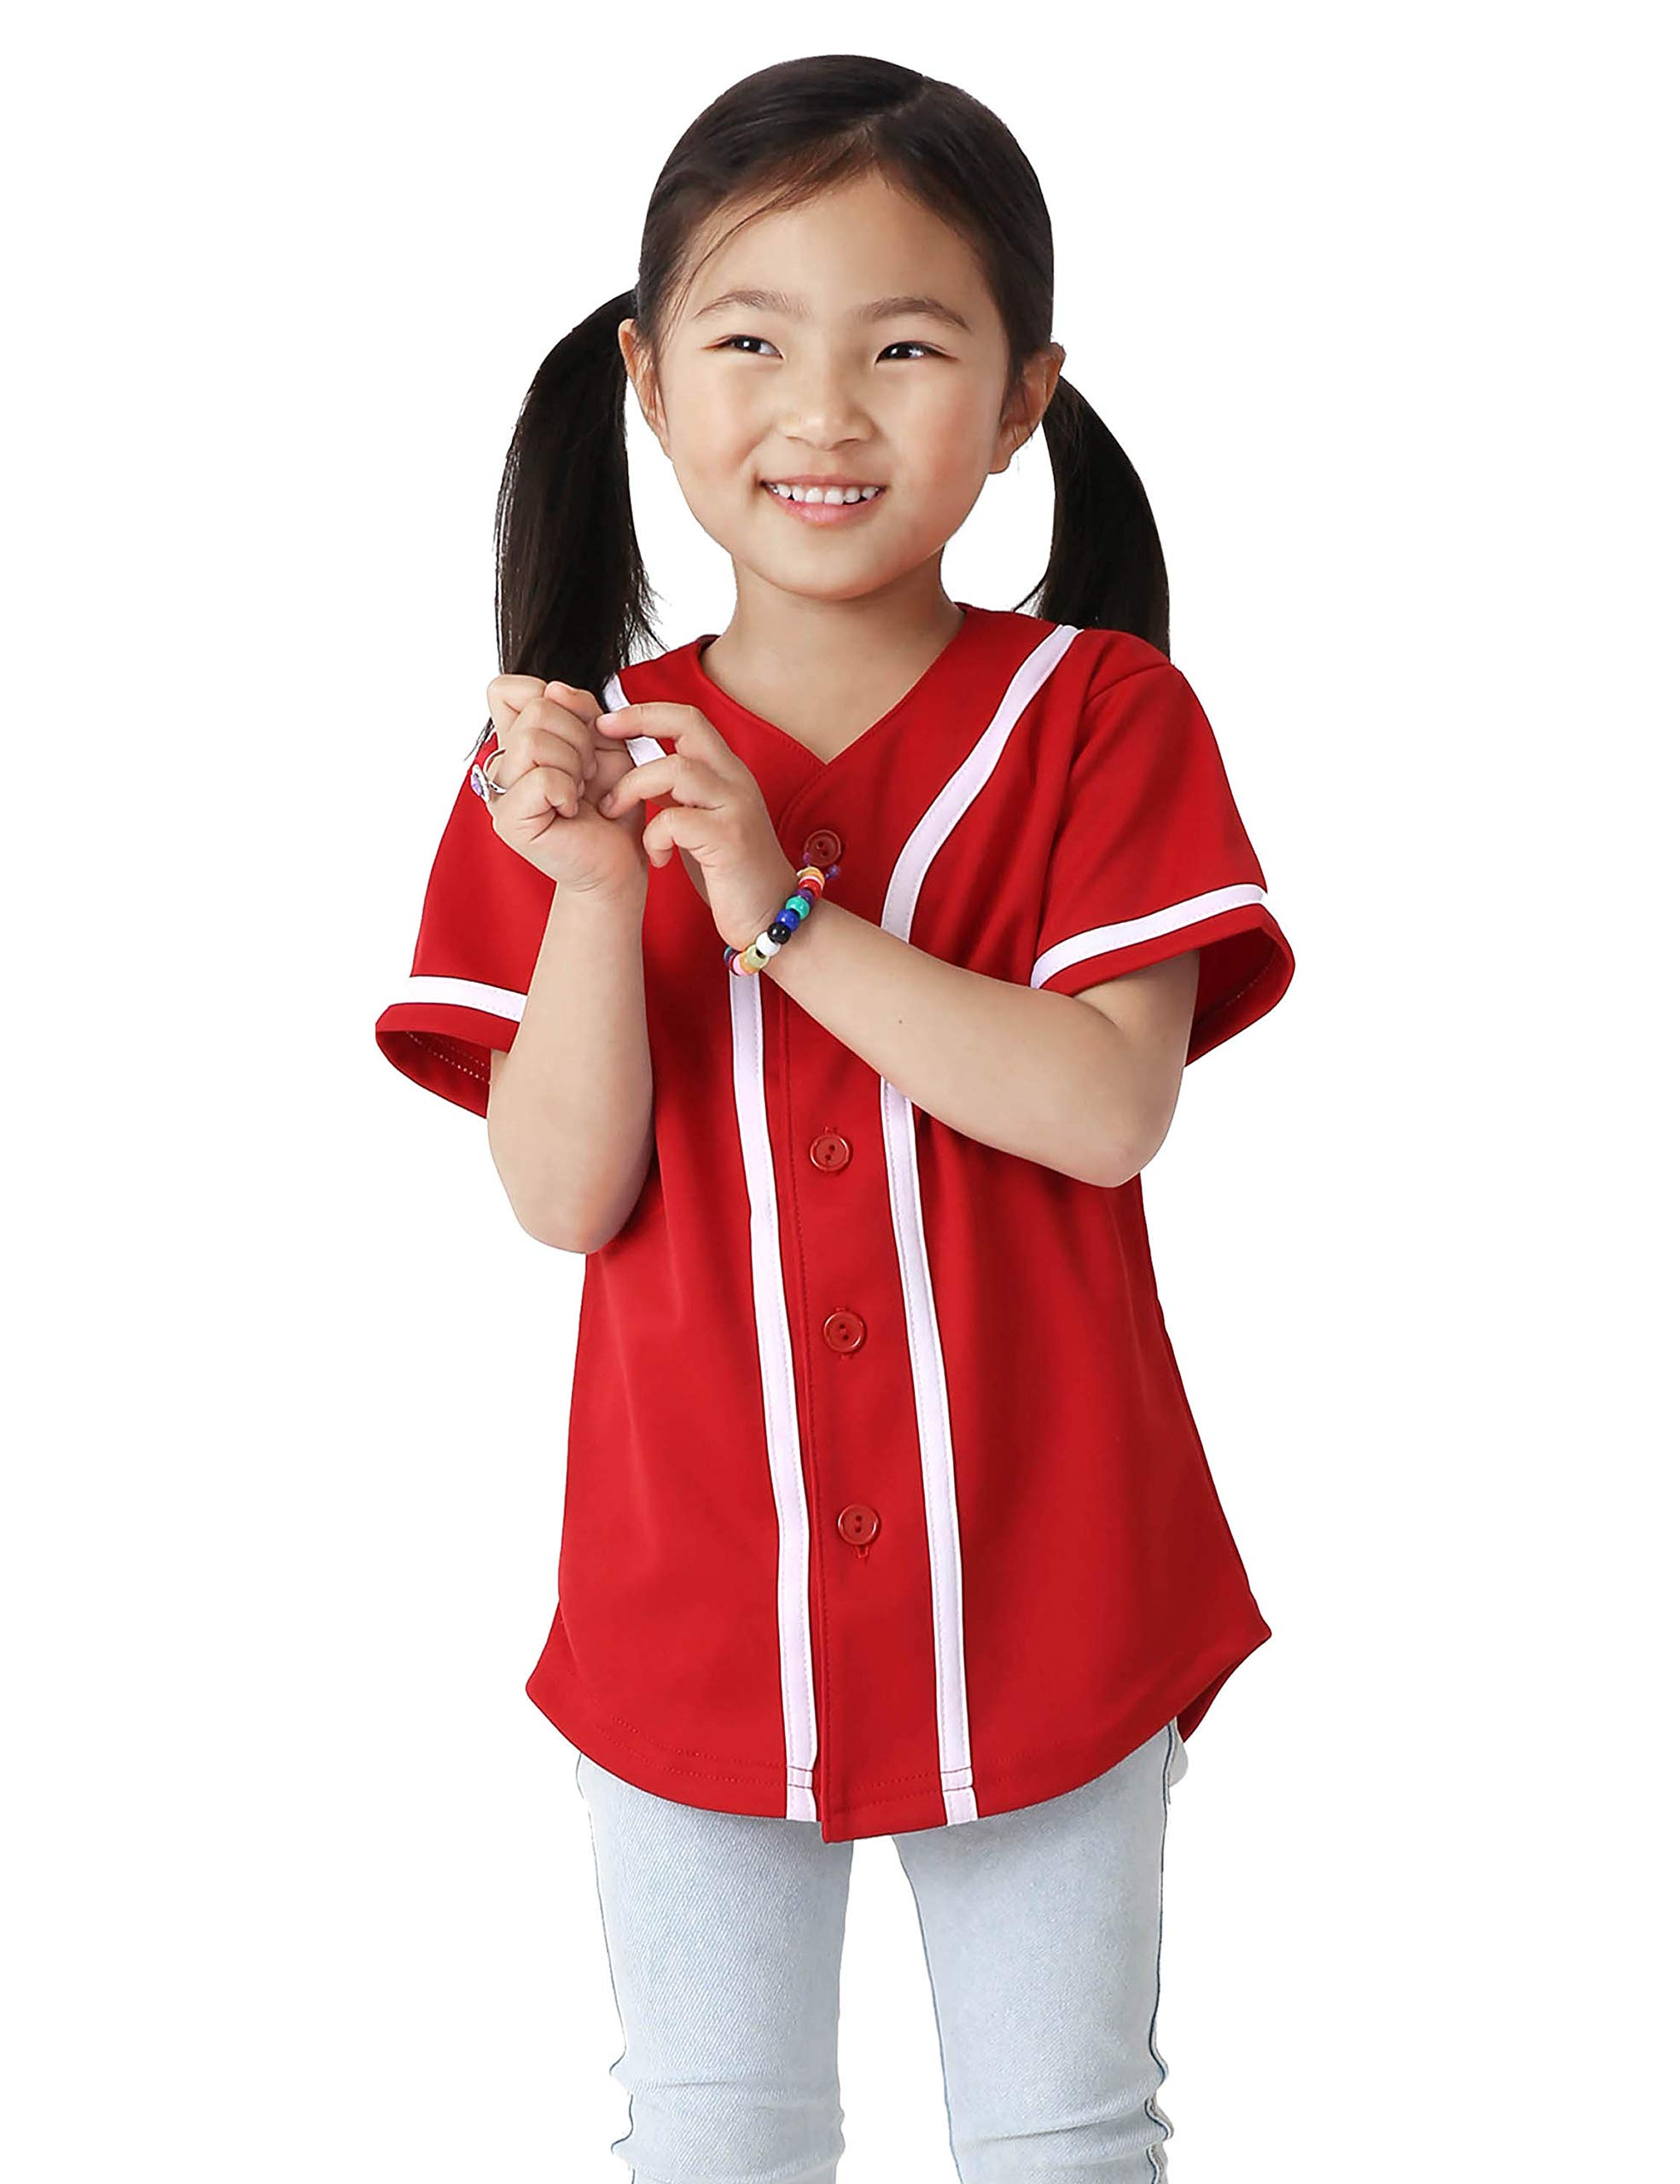 Ma Croix Kids Premium Baseball Jersey Active Button Shirt Team Uniform Little League (6 Junior, 5up01_red.WHI) by Ma Croix